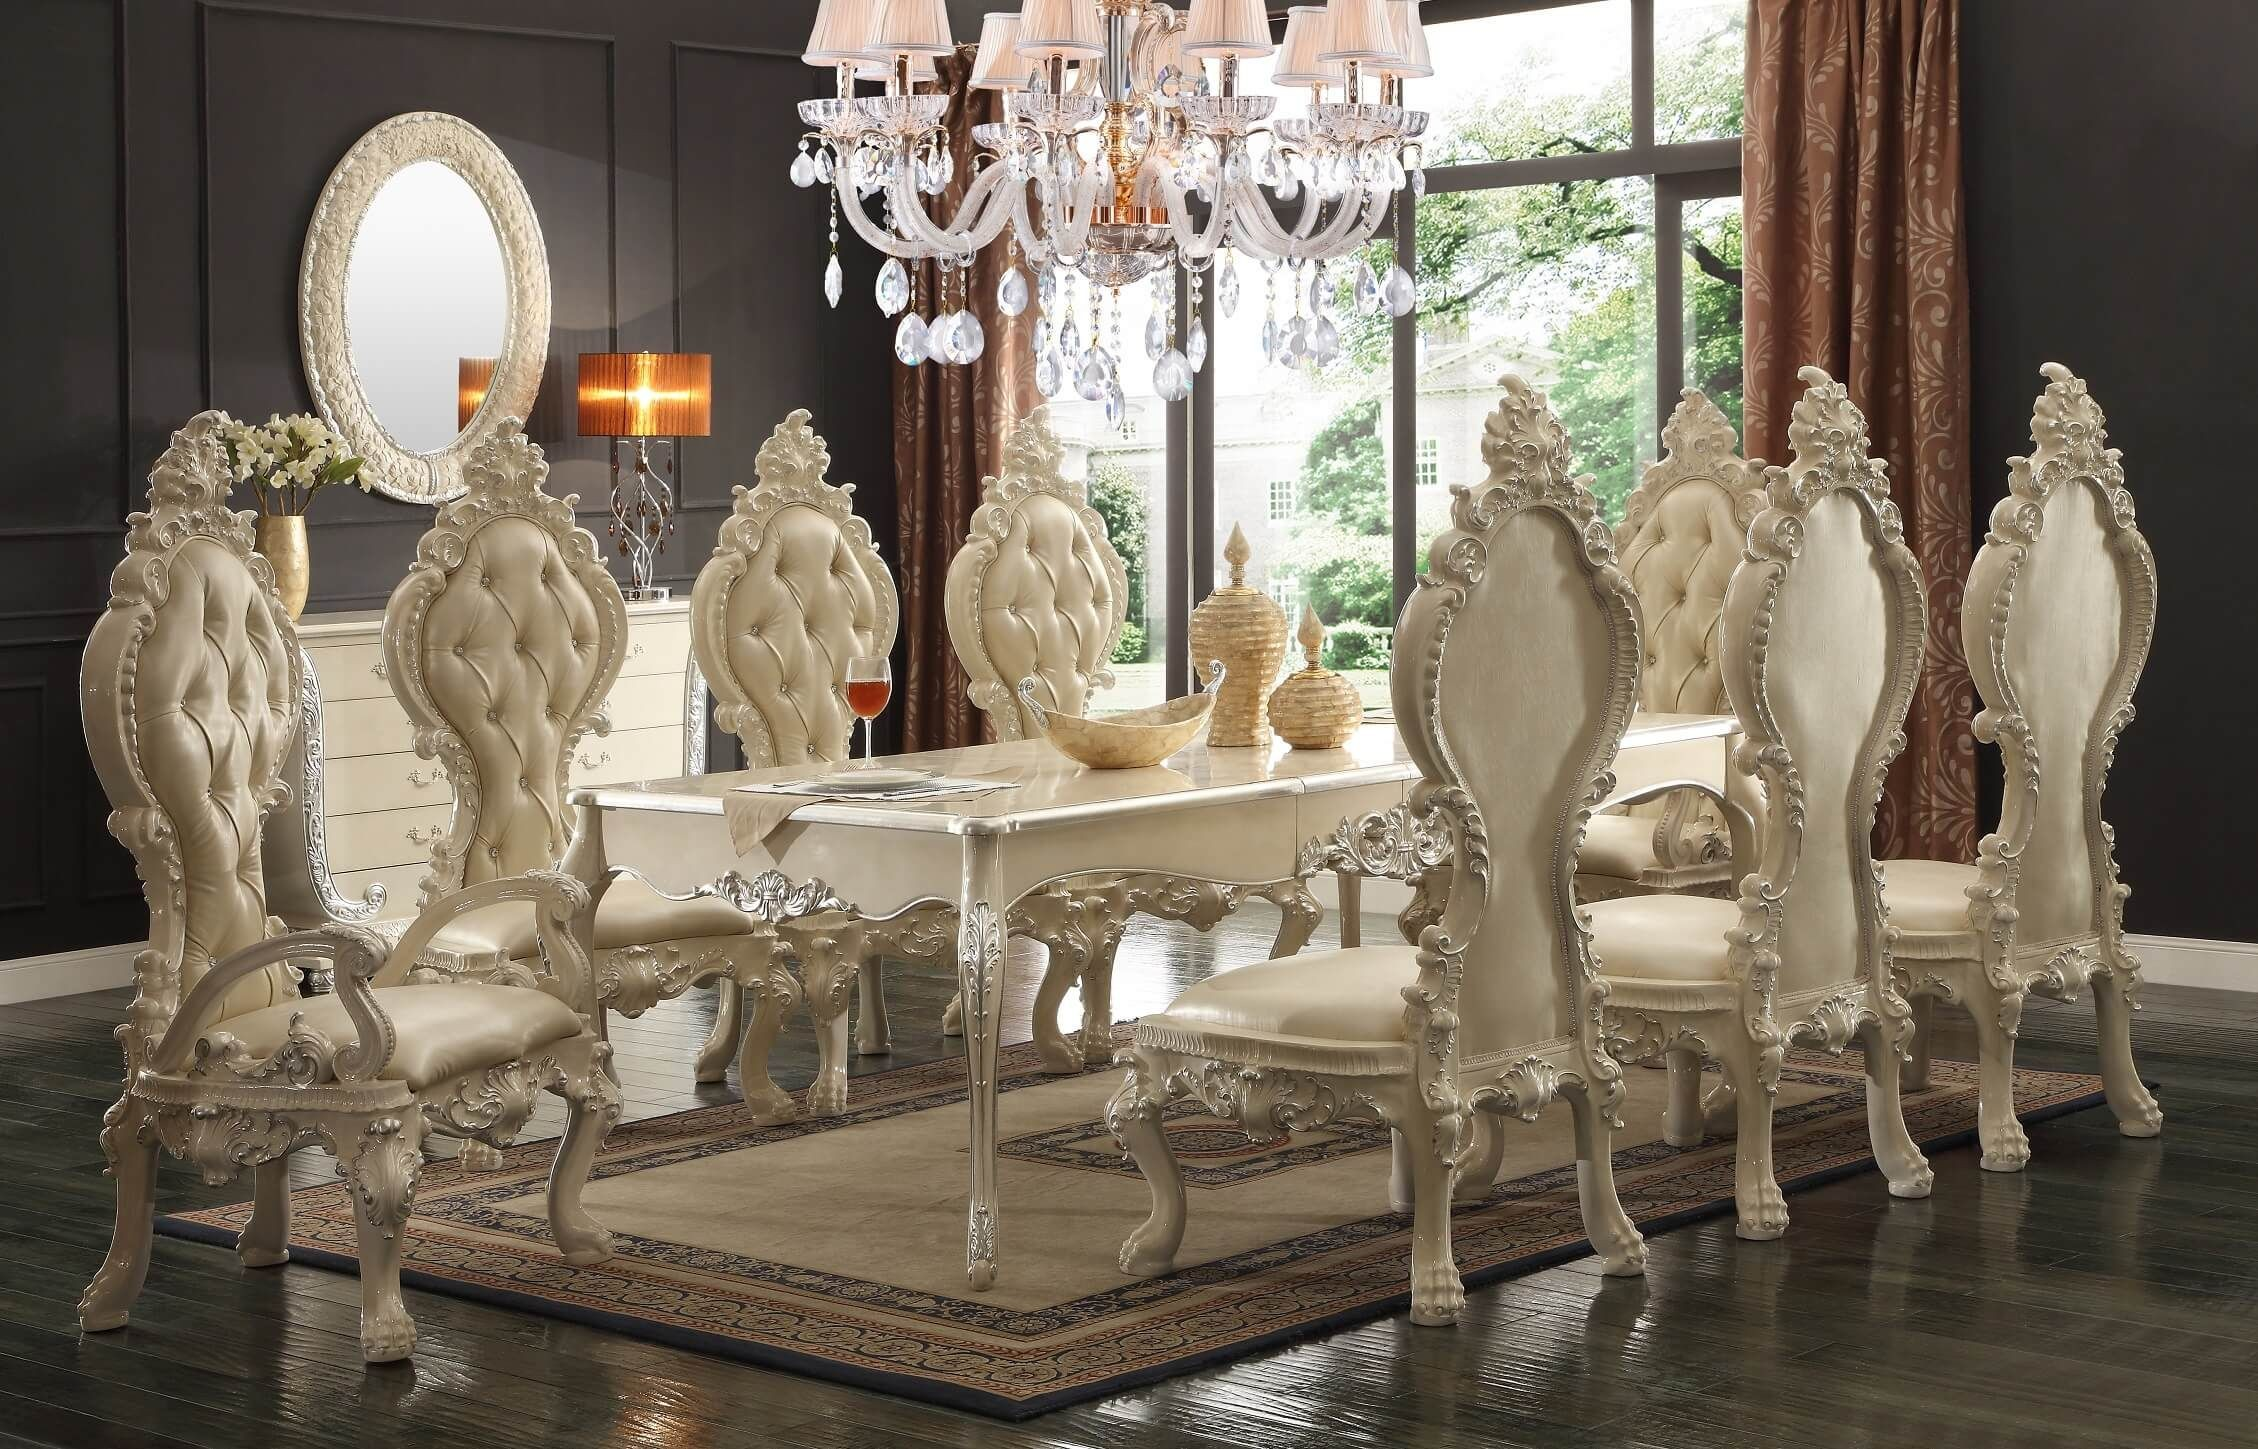 HD Homey Design Royal Palace Dining Set Homey Design HD Royal Palace Dining Room Collection Introduces the brilliance of time honored style